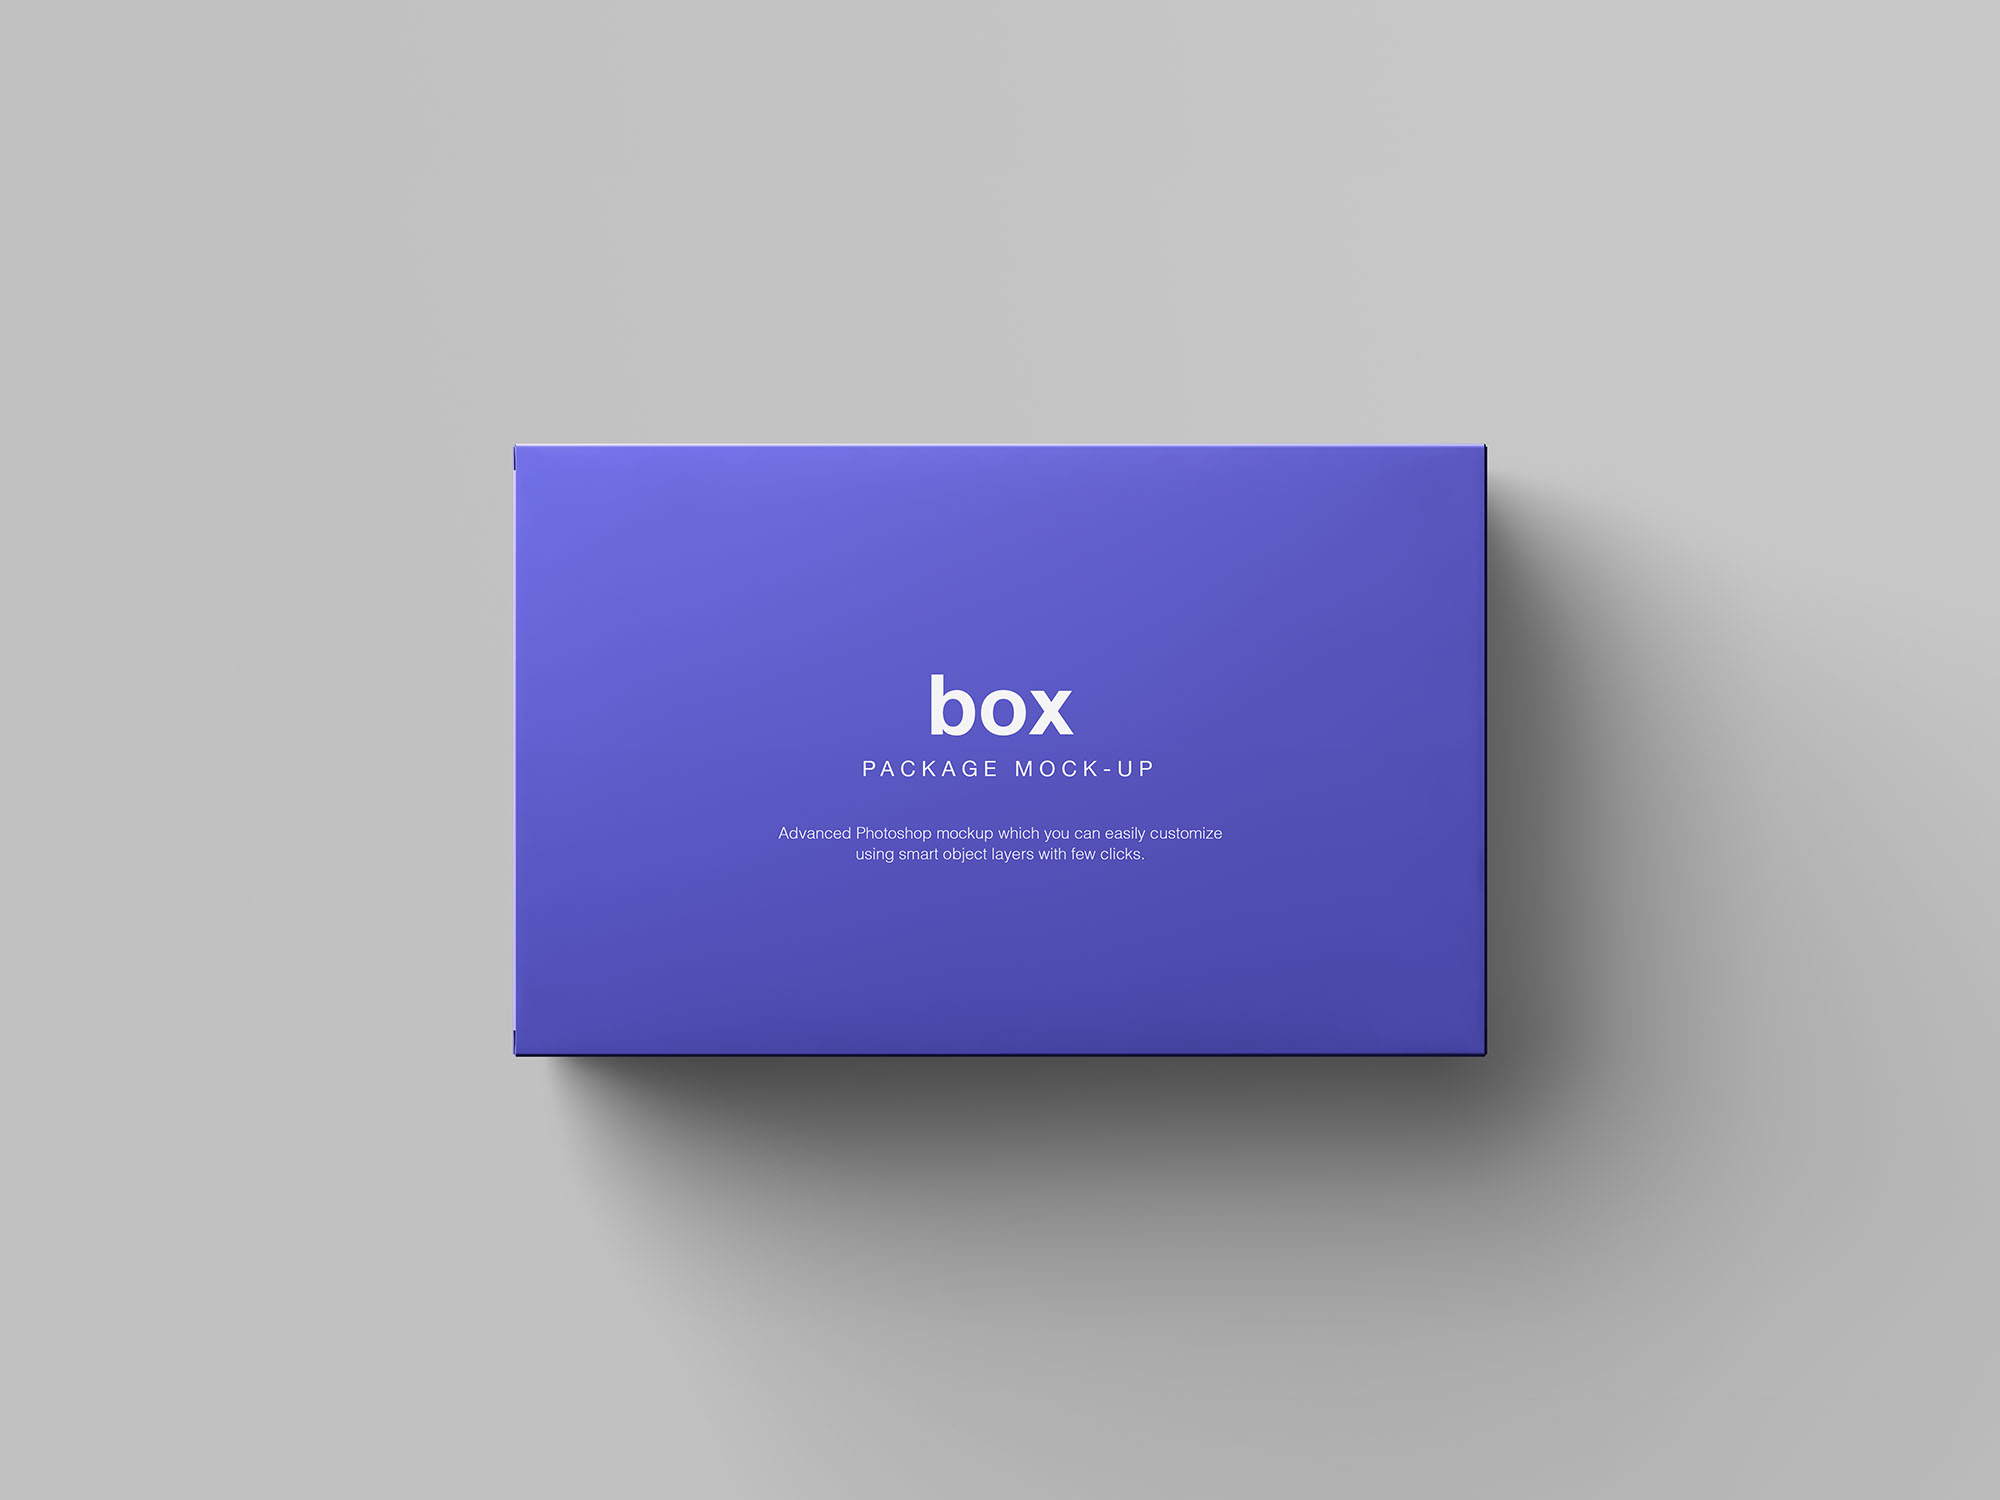 Box Packaging Mockup 4